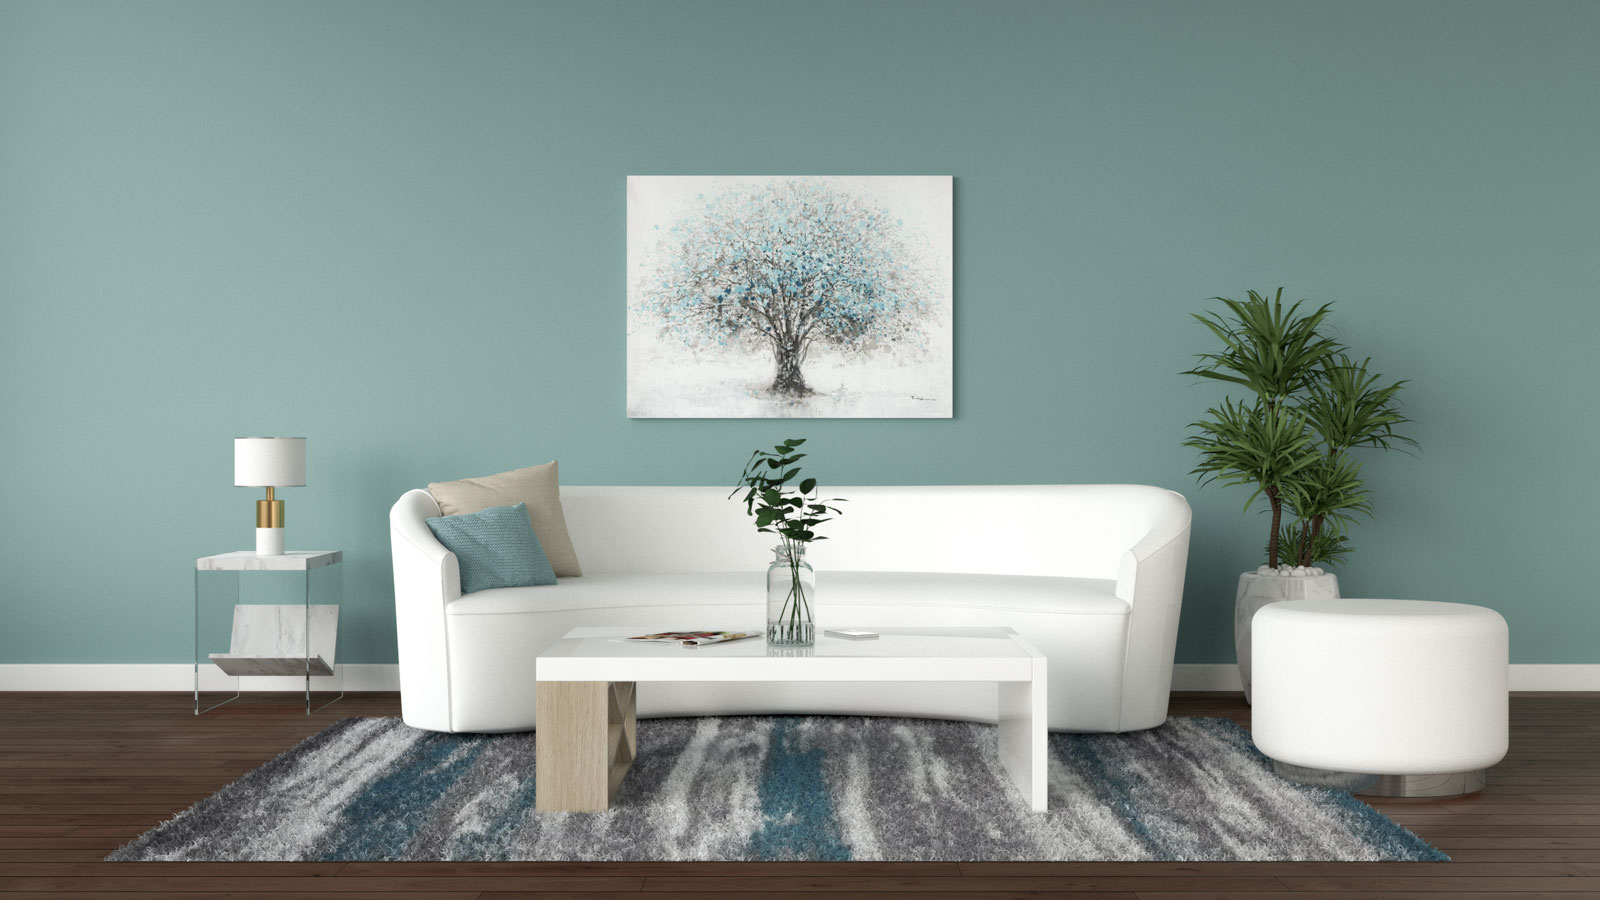 Living room with aegean teal wall and white furniture